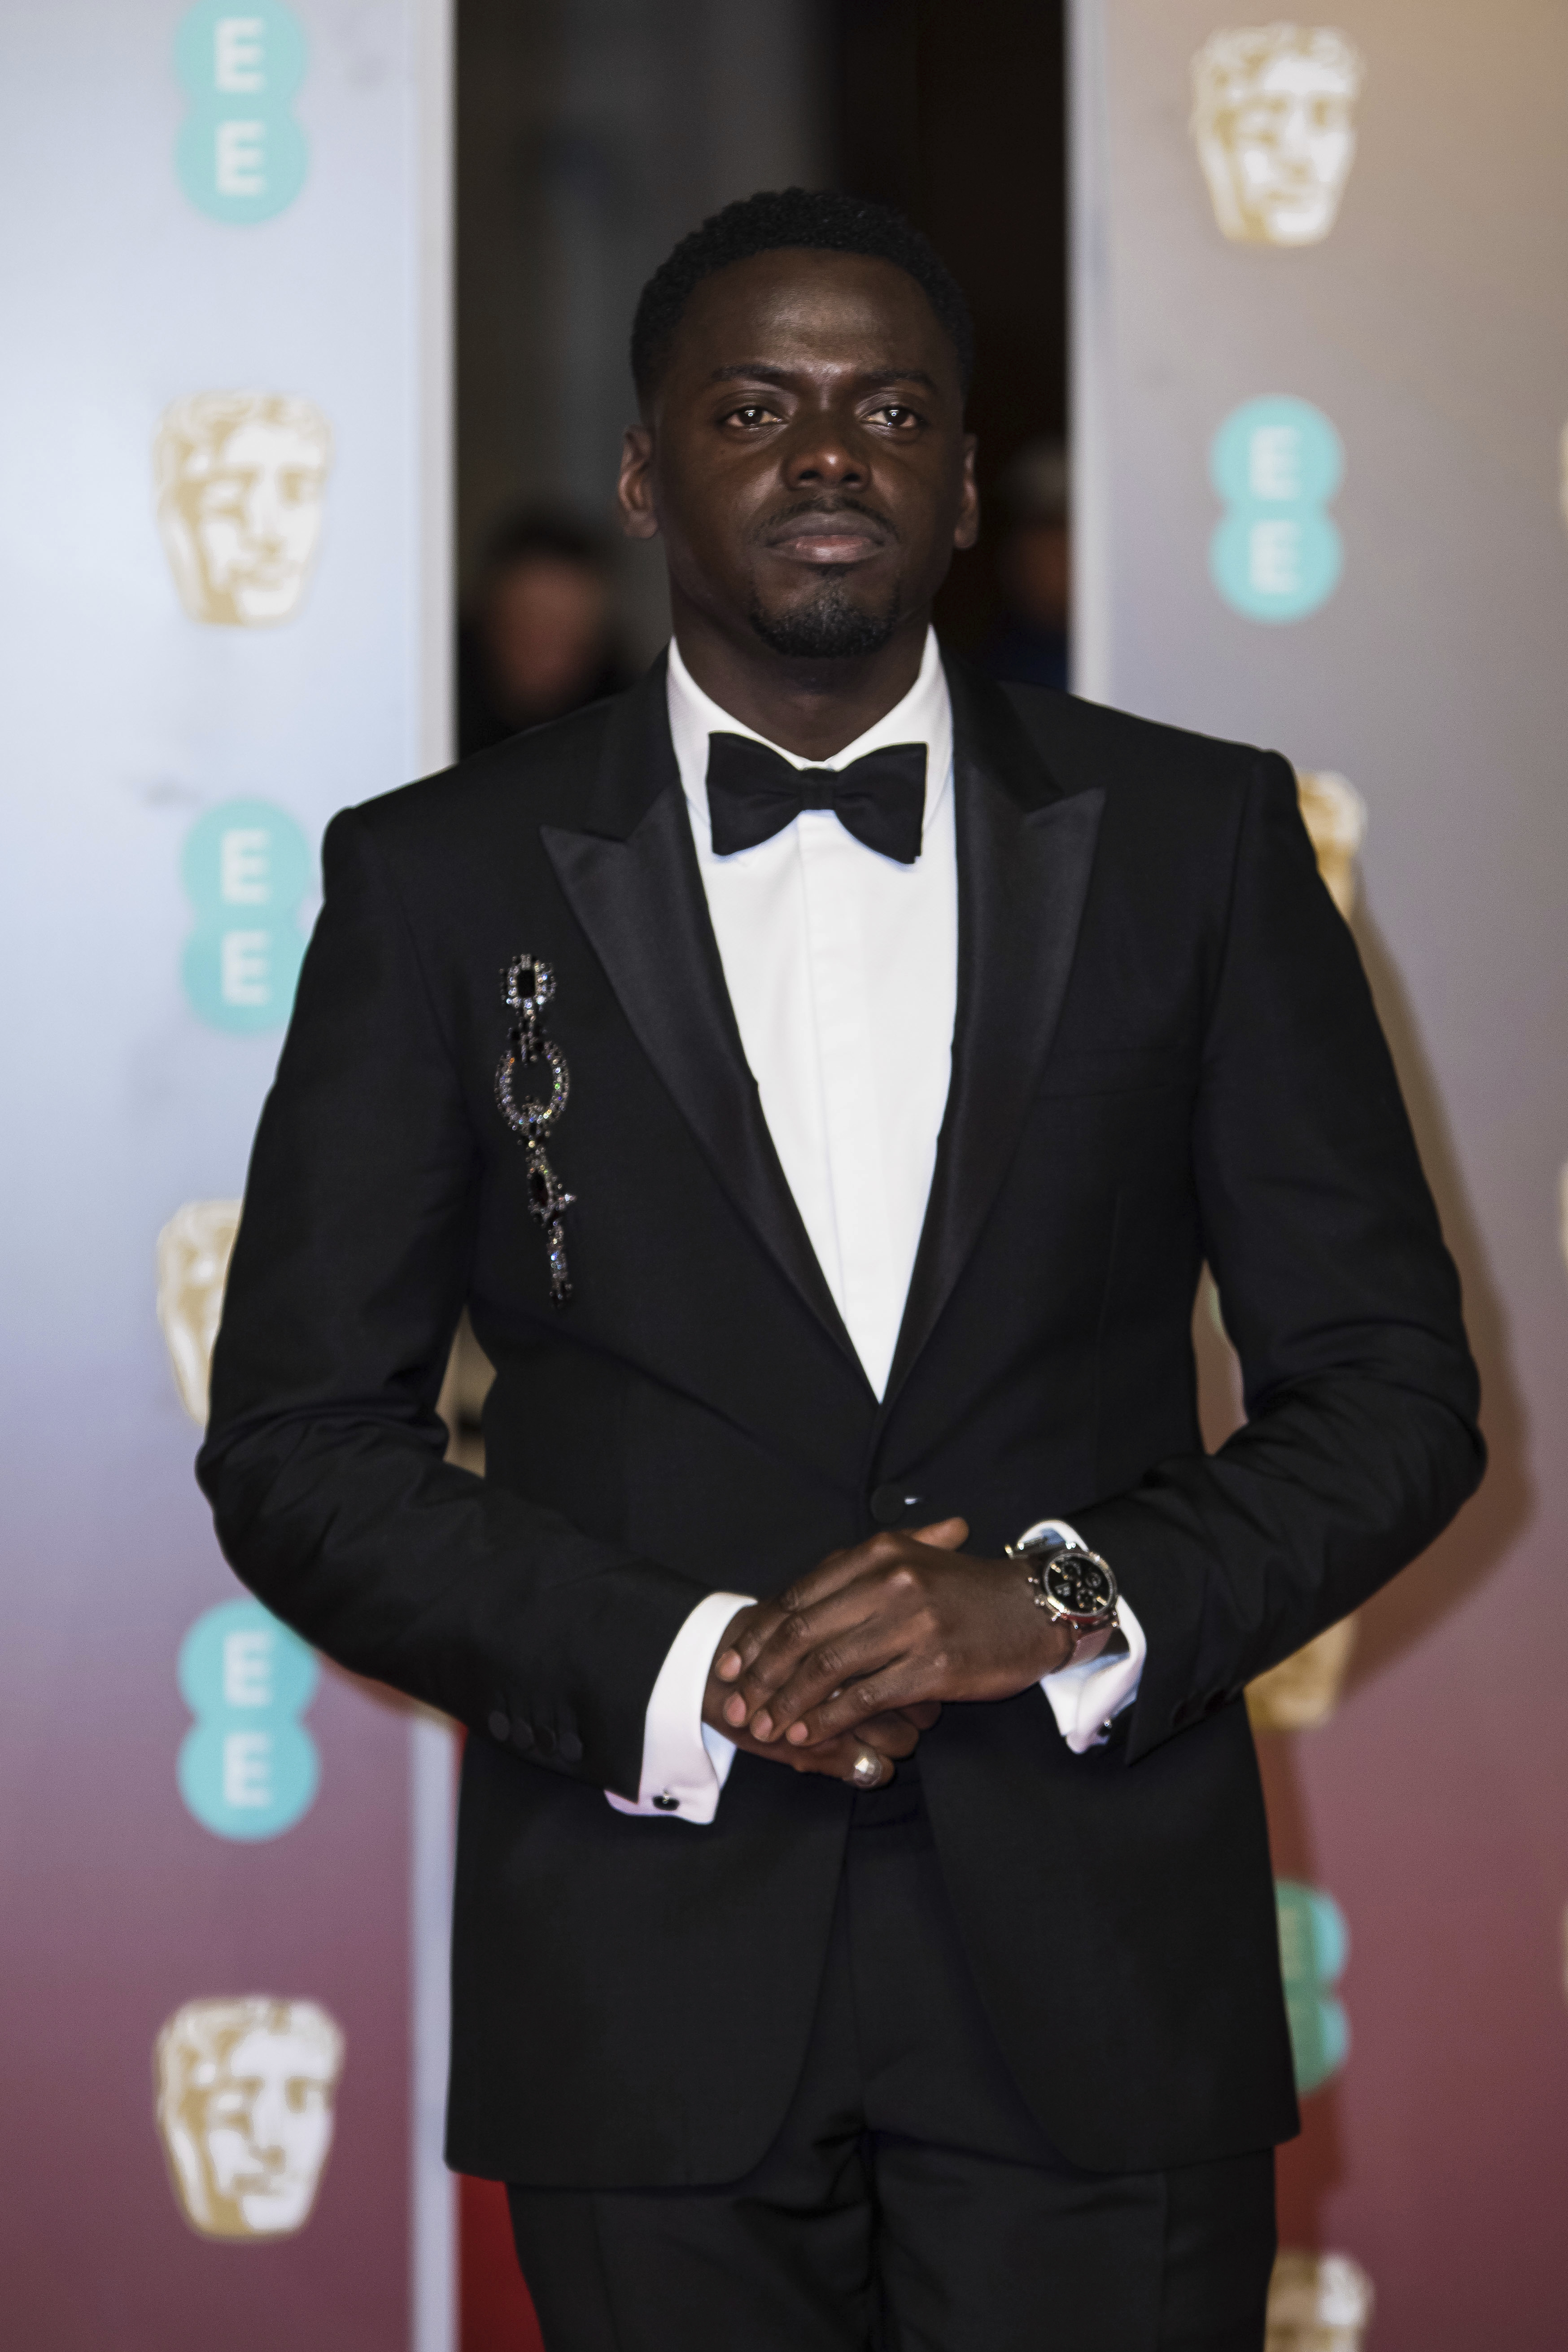 <div class='meta'><div class='origin-logo' data-origin='AP'></div><span class='caption-text' data-credit='Vianney Le Caer/Invision/AP'>Daniel Kaluuya poses for photographers upon arrival at the BAFTA Film Awards, in London, Sunday, Feb. 18, 2018.</span></div>